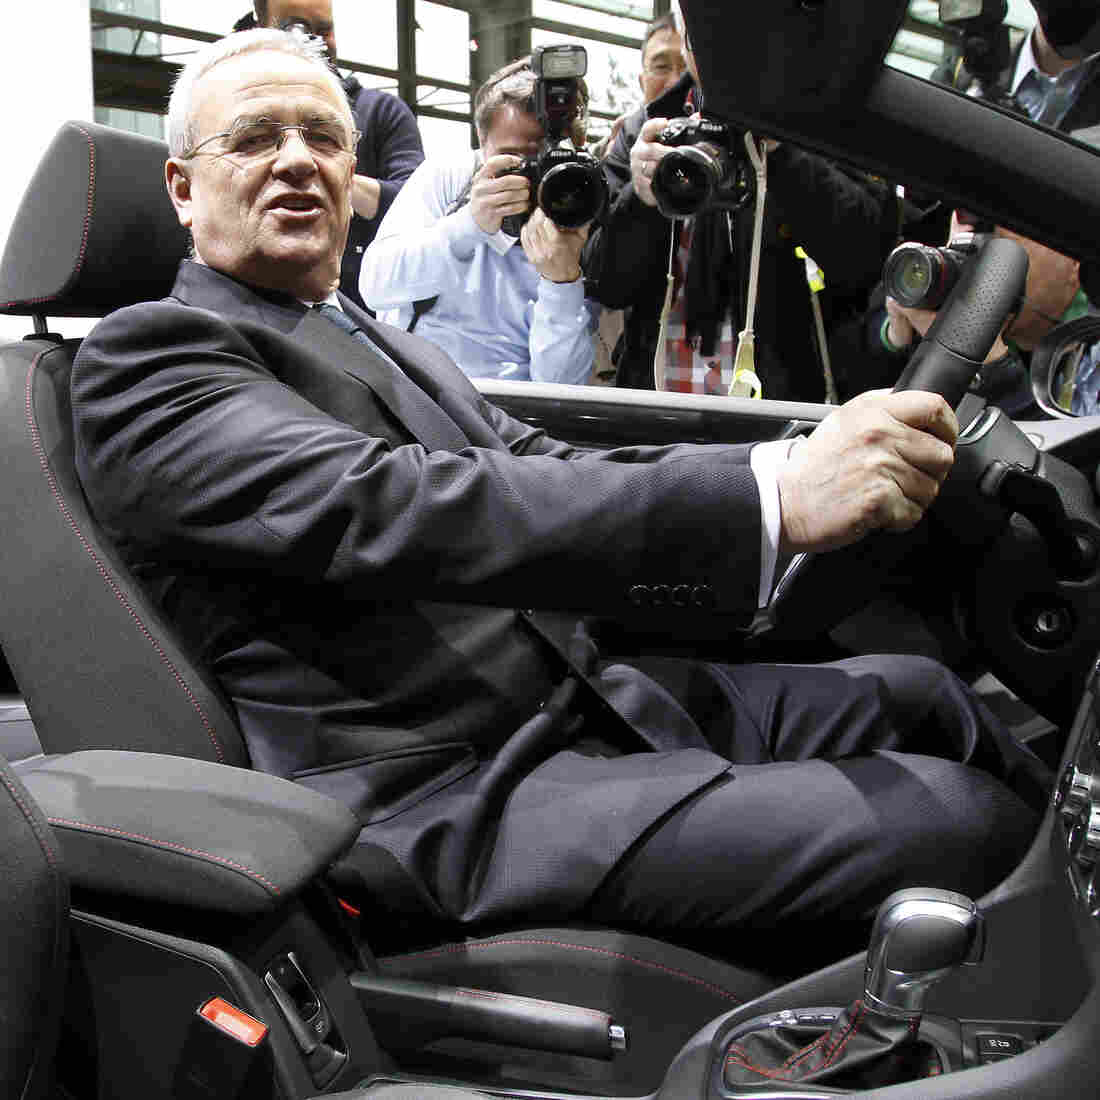 Then-CEO Martin Winterkorn poses at Volkswagen's annual press conference in Wolfsburg, Germany, in 2012. He resigned his post last month following revelations that VW cheated on emissions tests.